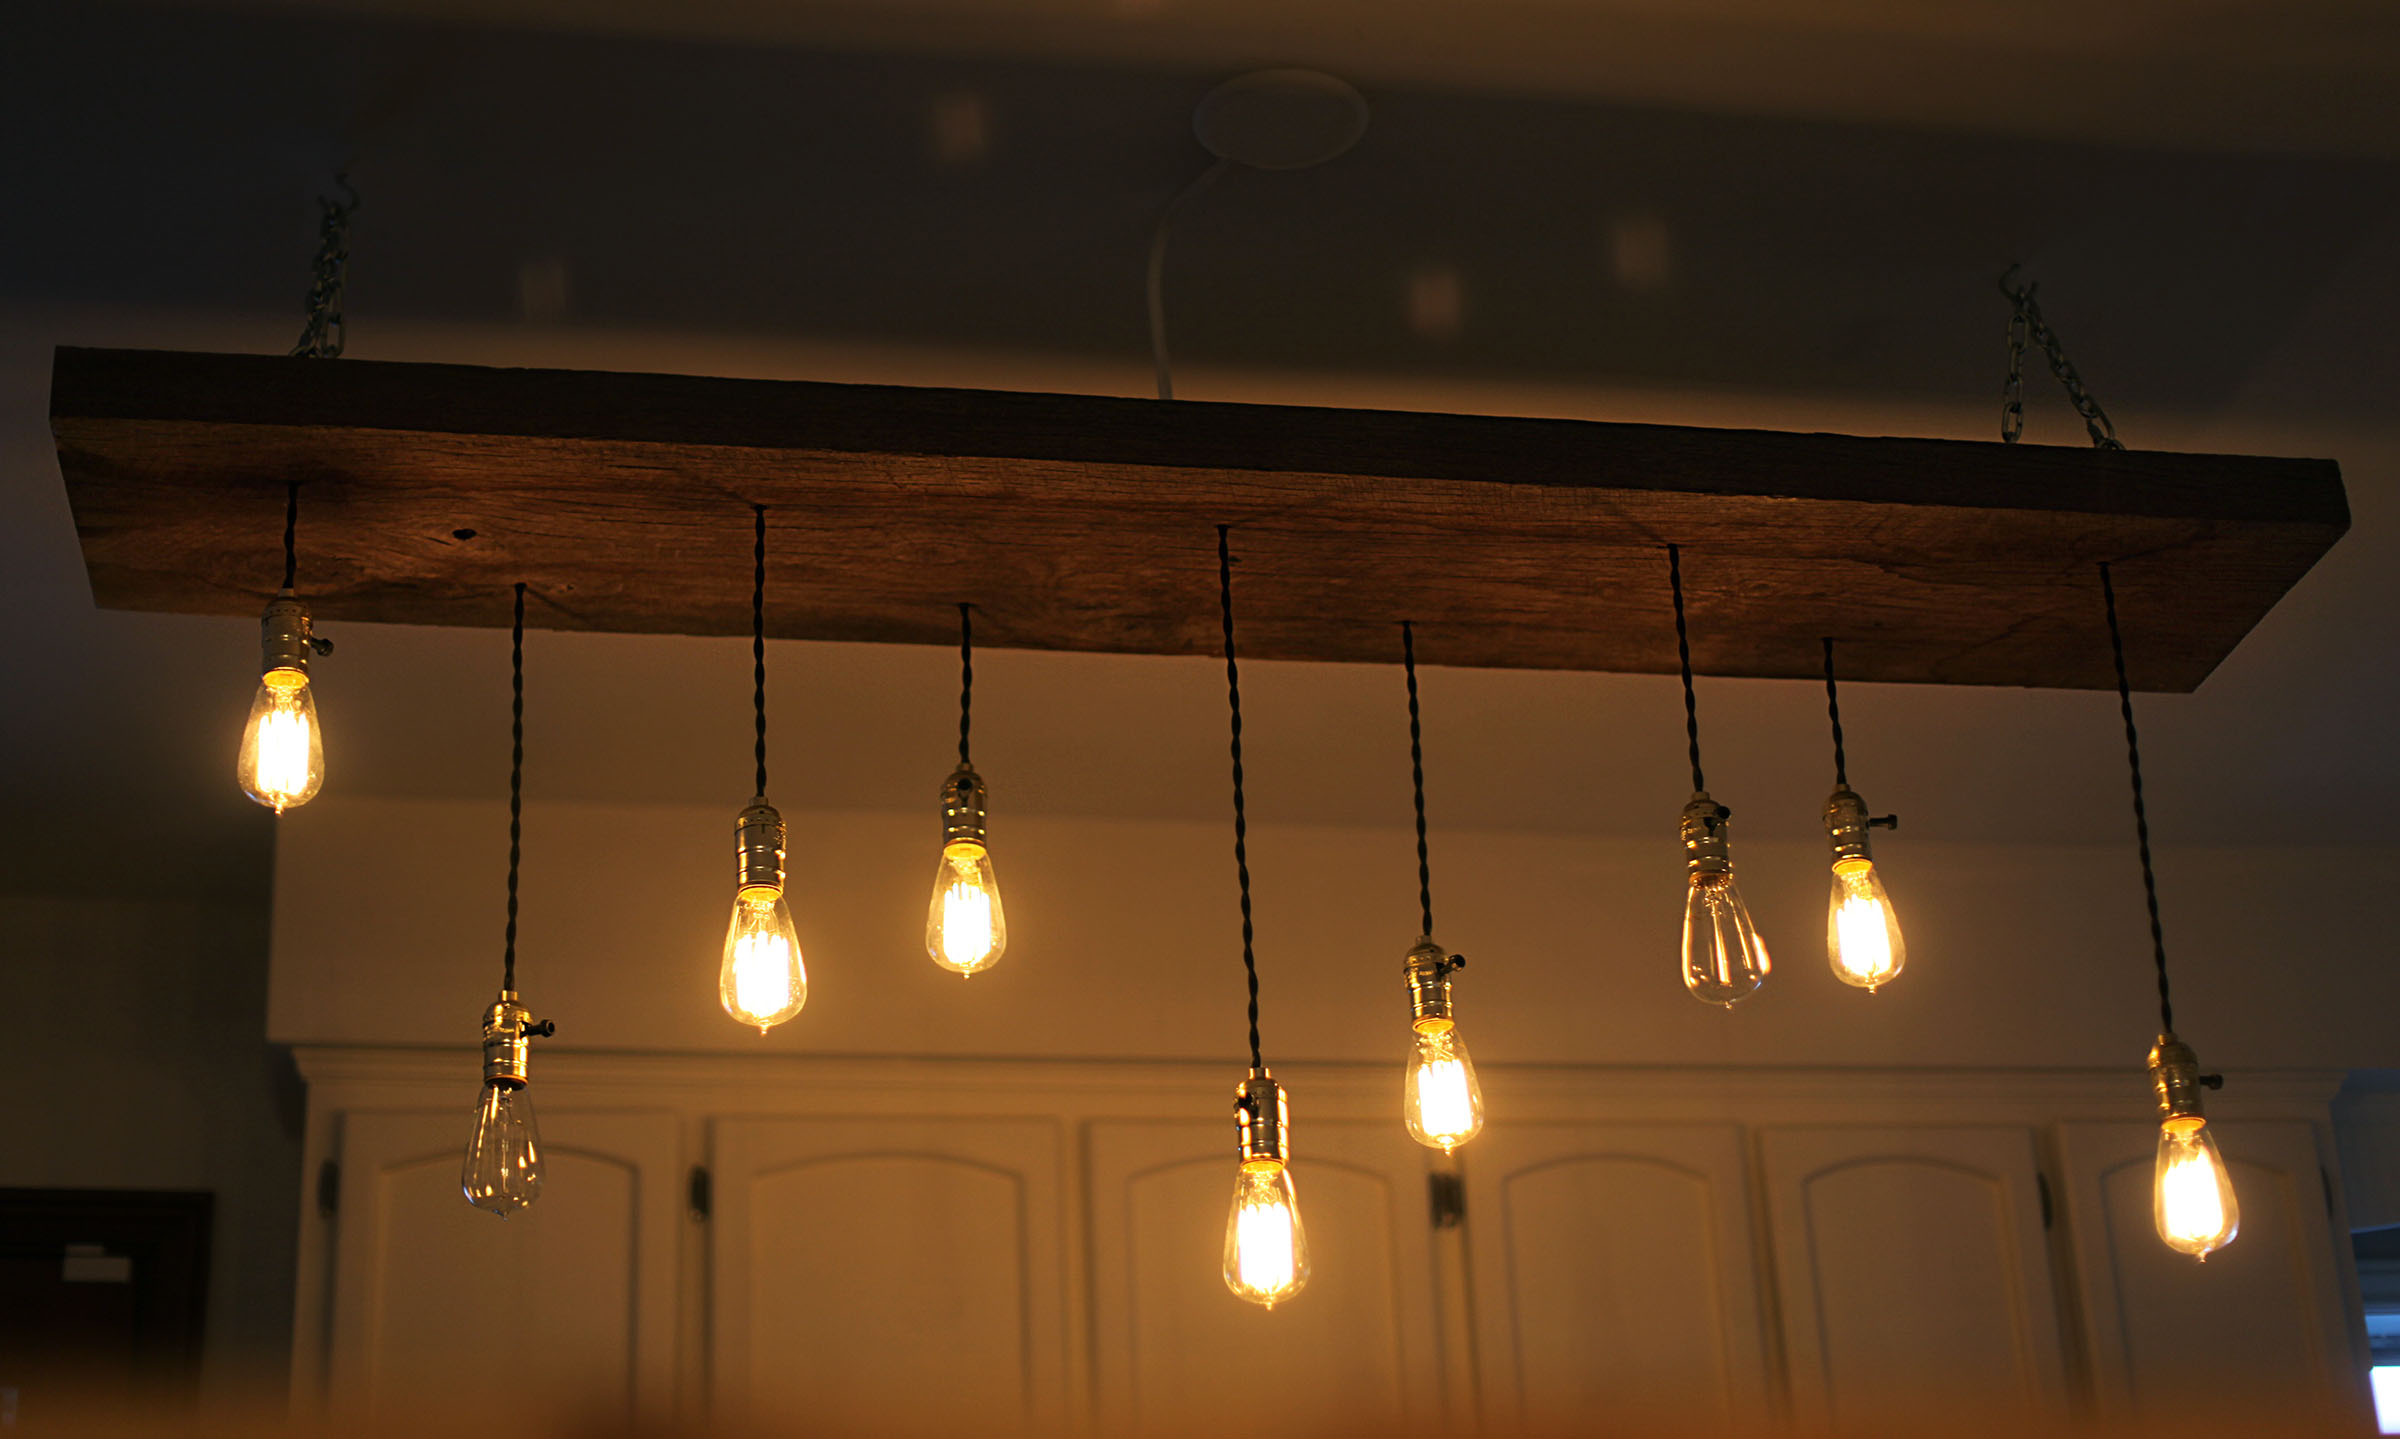 Diy reclaimed lumber hanging edison bulb chandelier unmaintained placing junction boxes wiring lights arubaitofo Gallery